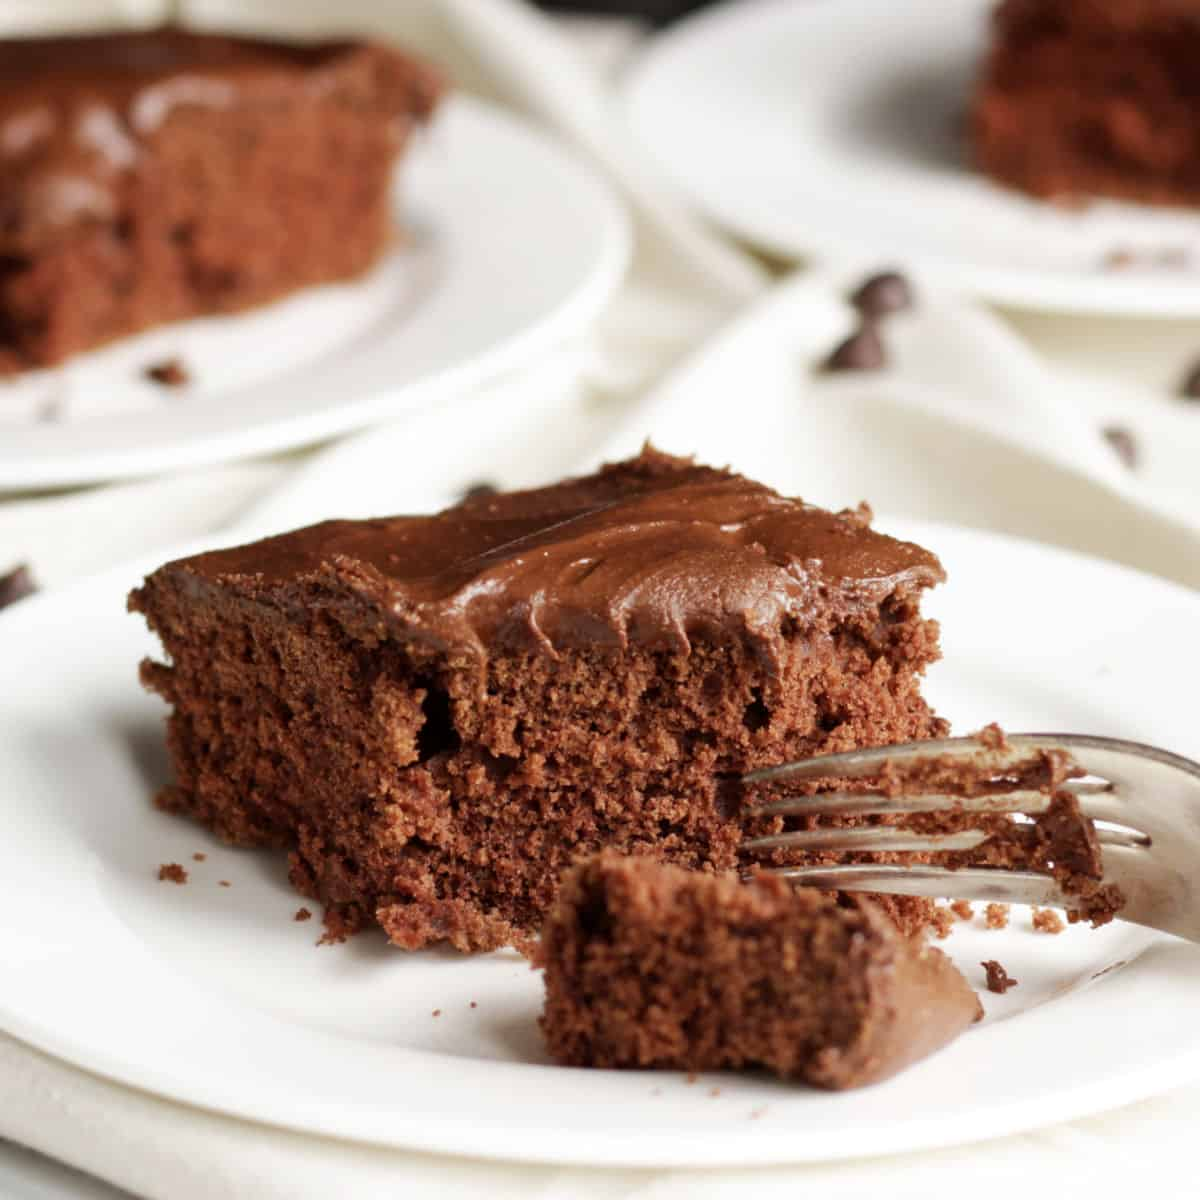 frosted chocolate cake on plate with fork breaking in